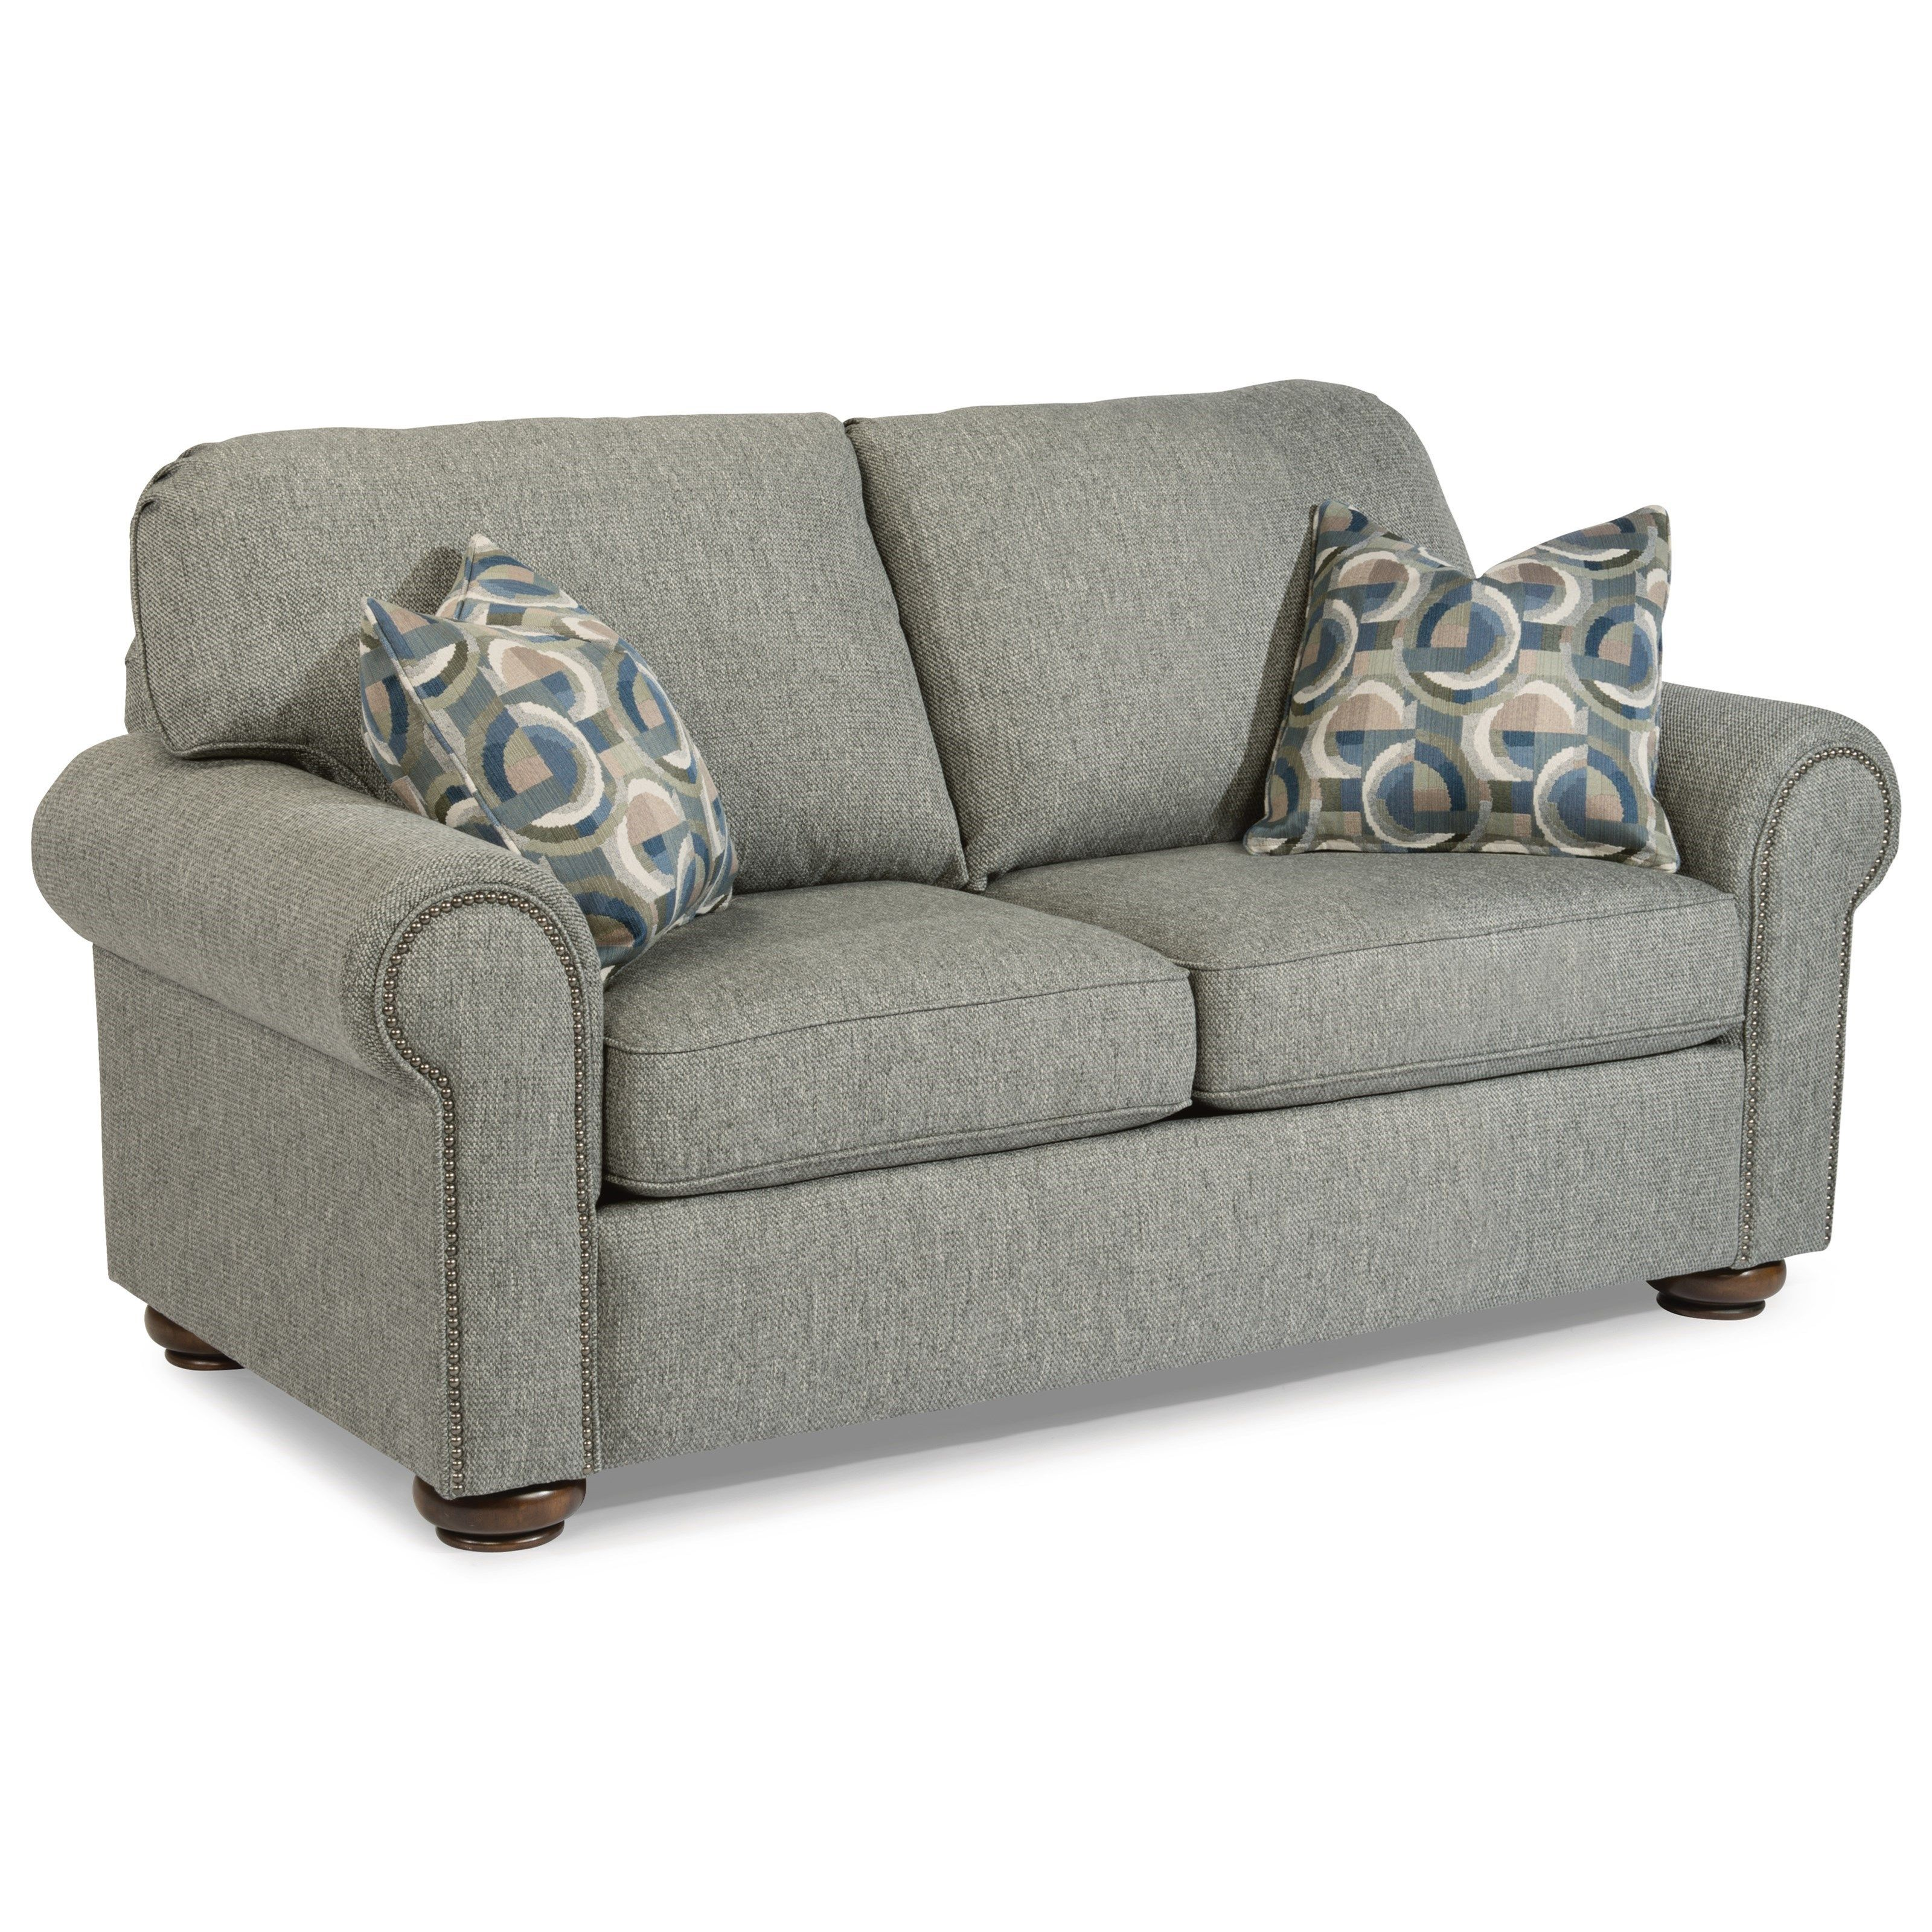 Patio Furniture Beaumont Texas: Preston Traditional Loveseat With Nailhead Trim By